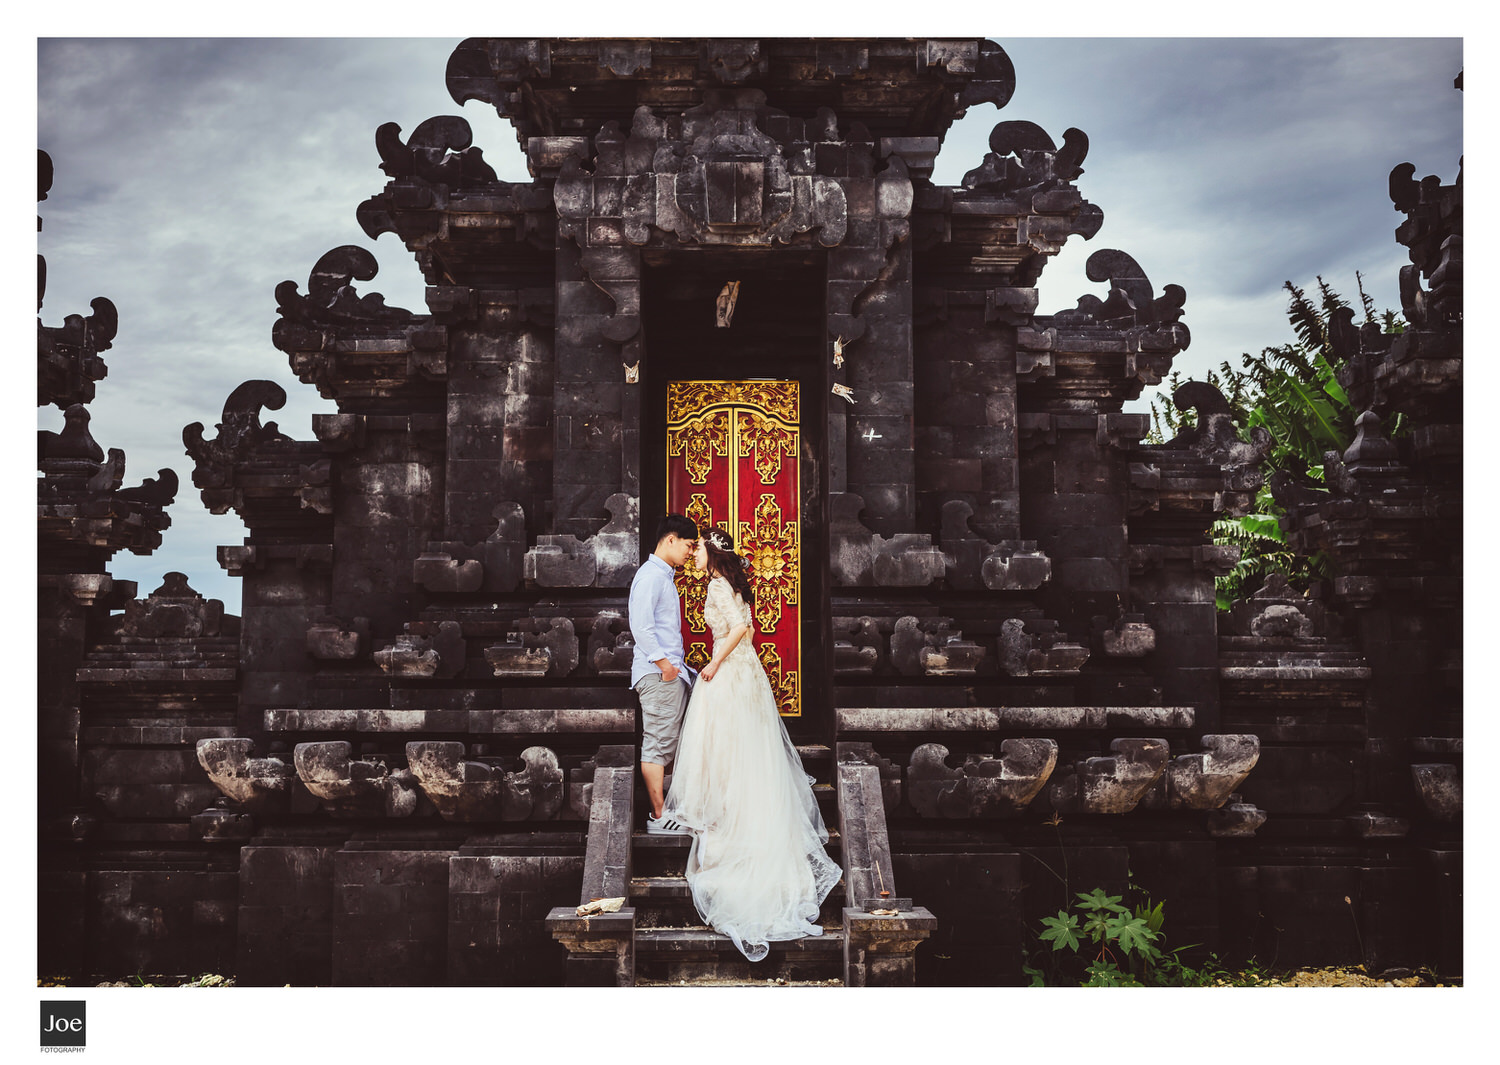 joe-fotography-15-bali-pre-wedding-amelie.jpg